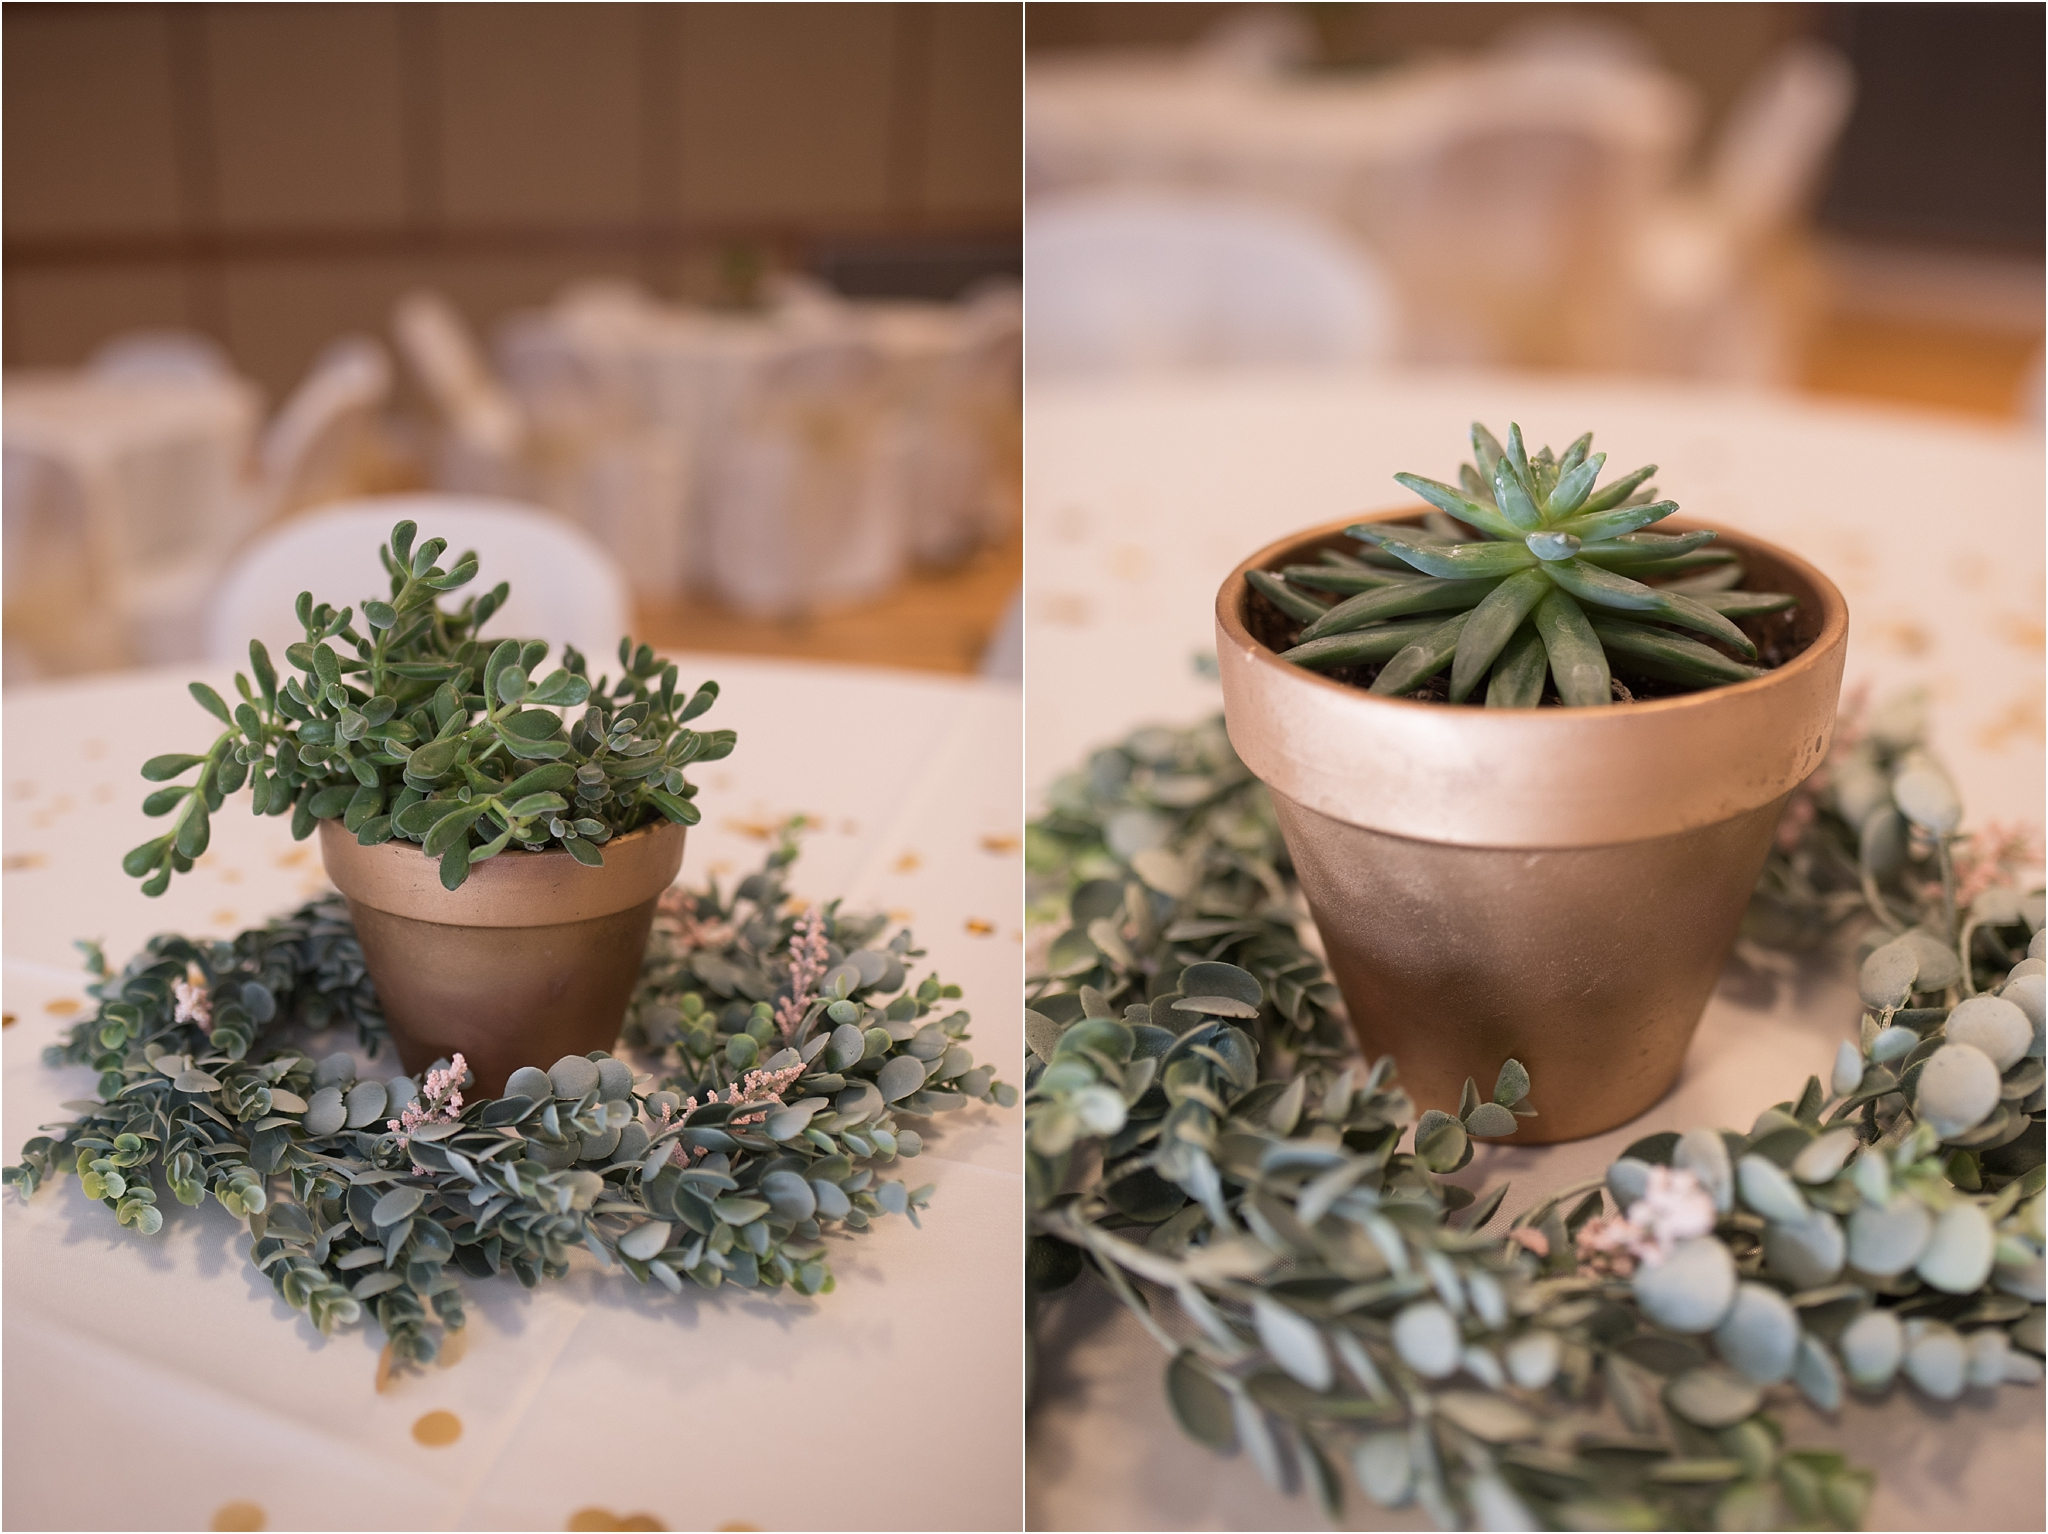 kayla kitts photography - albuquerque wedding photographer - hairpins and scissors - a cake odyssey - new mexico wedding photographer_0123.jpg